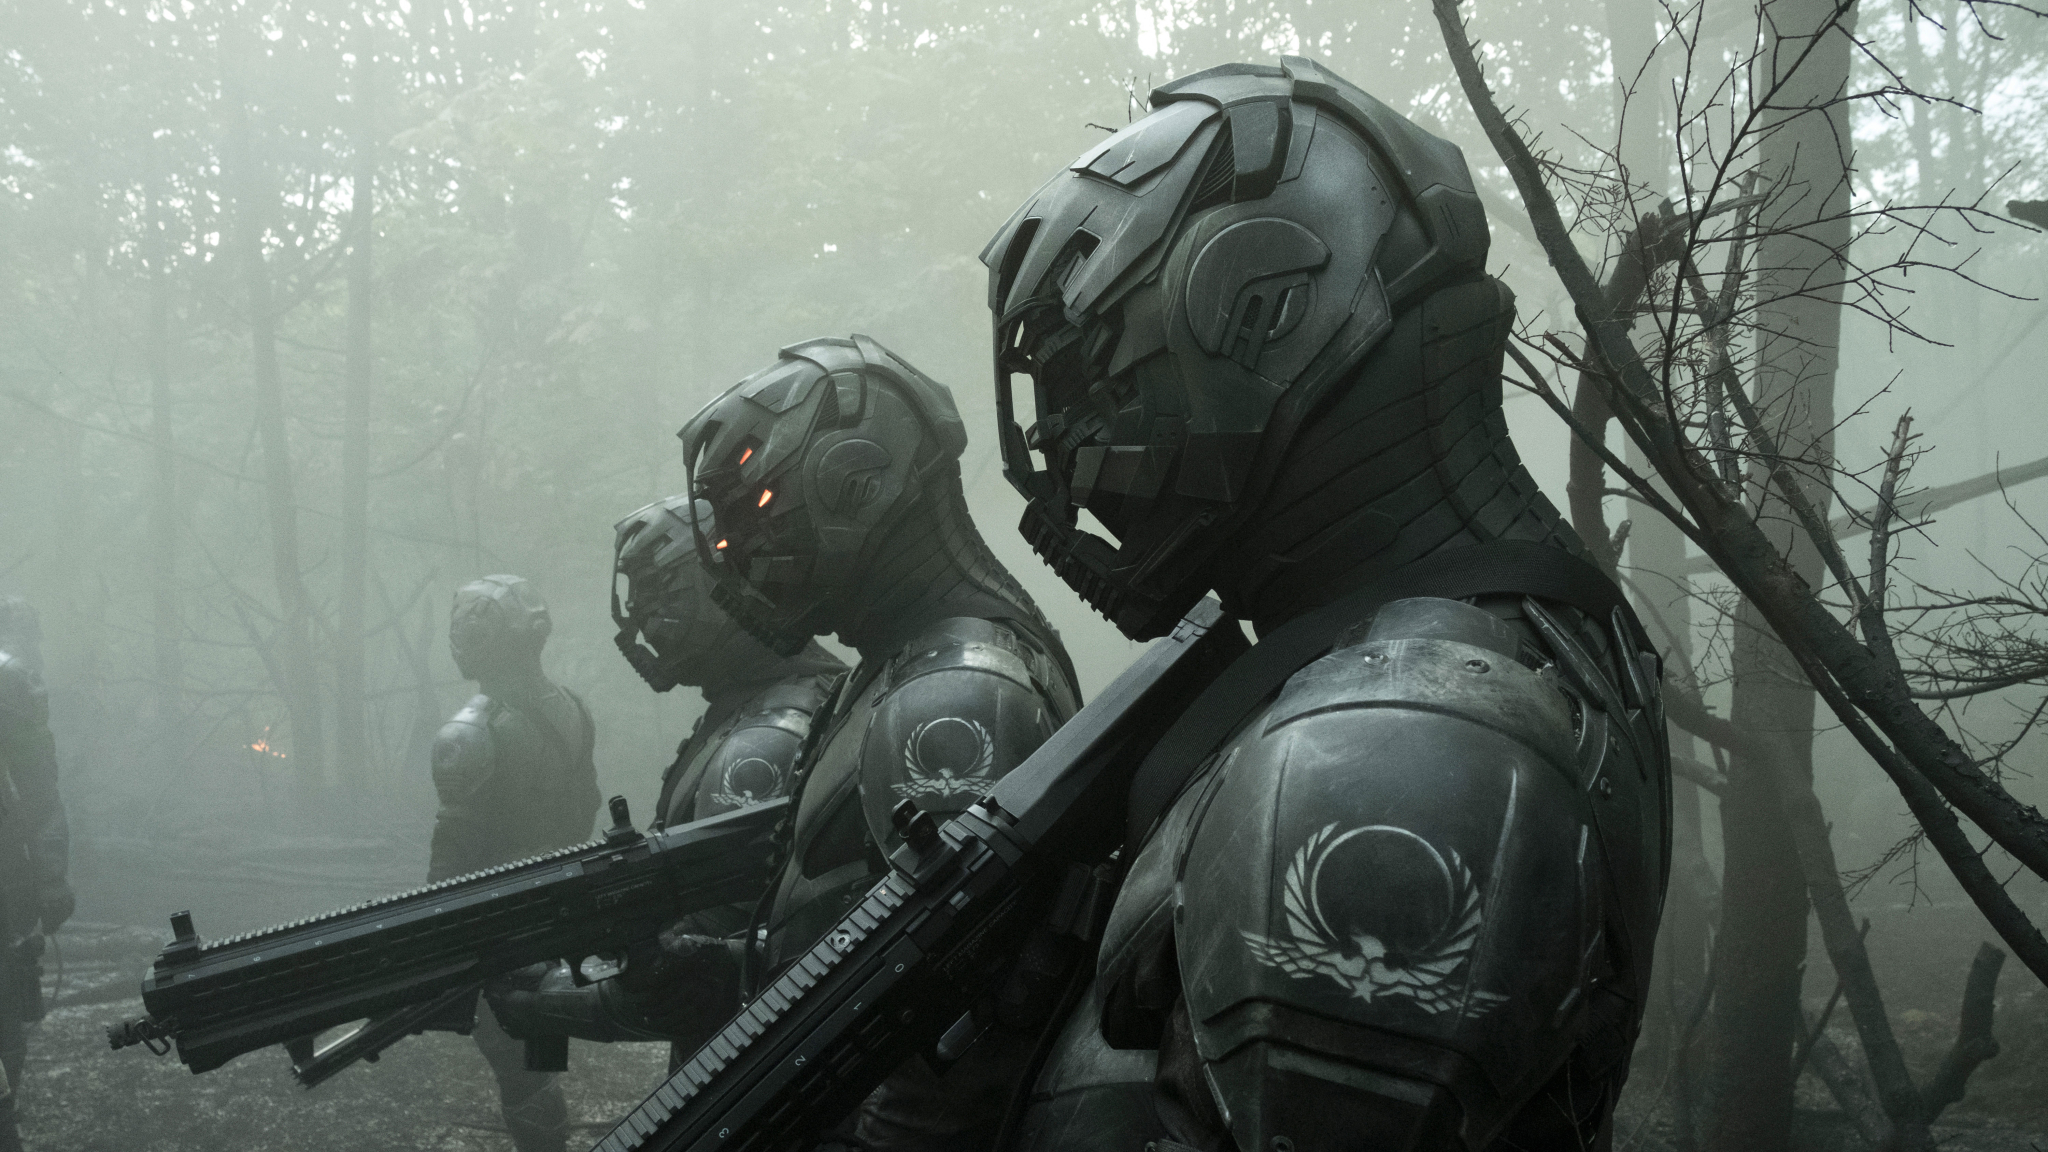 Envoys from Altered Carbon Wallpaper in 2048x1152 Resolution